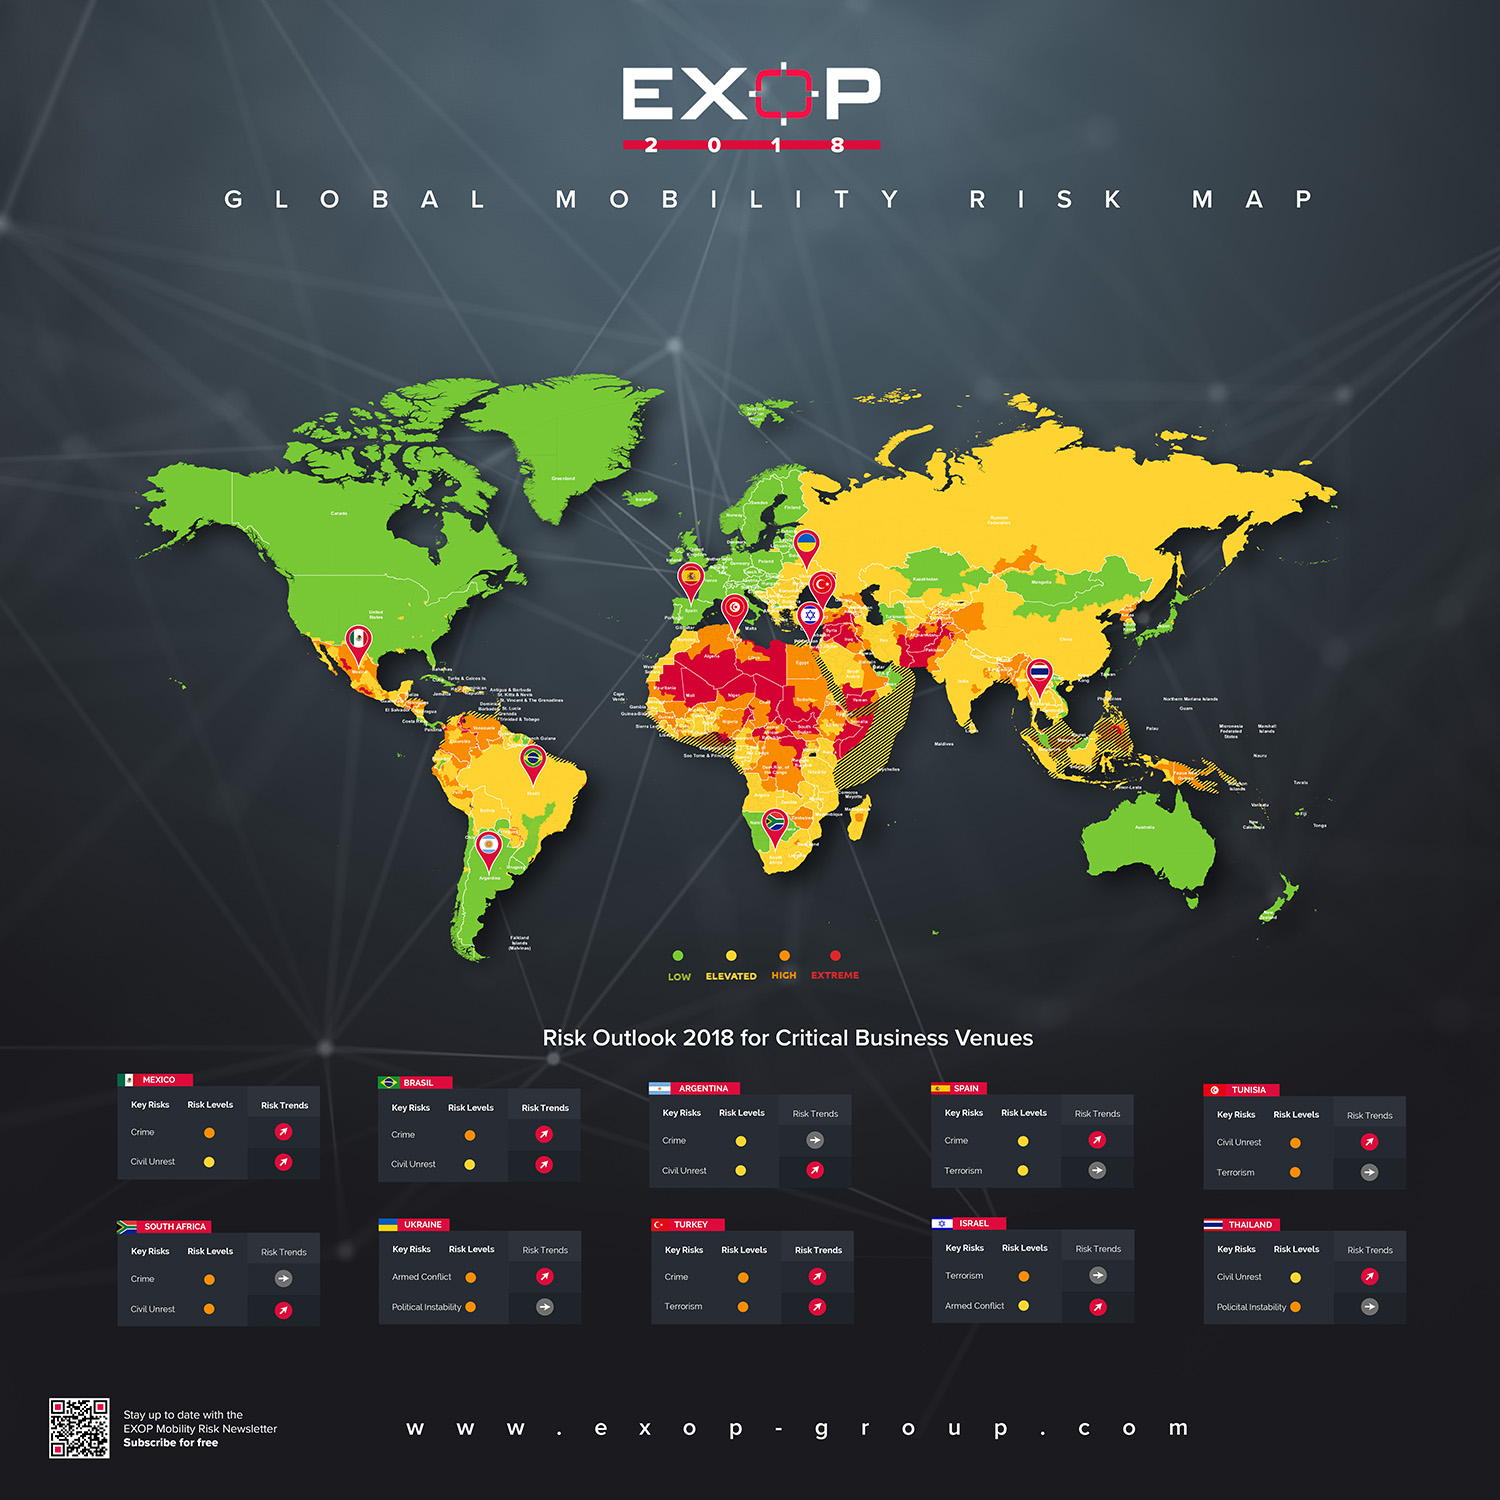 Global Mobility Risk Map 2018 - EXOP Group